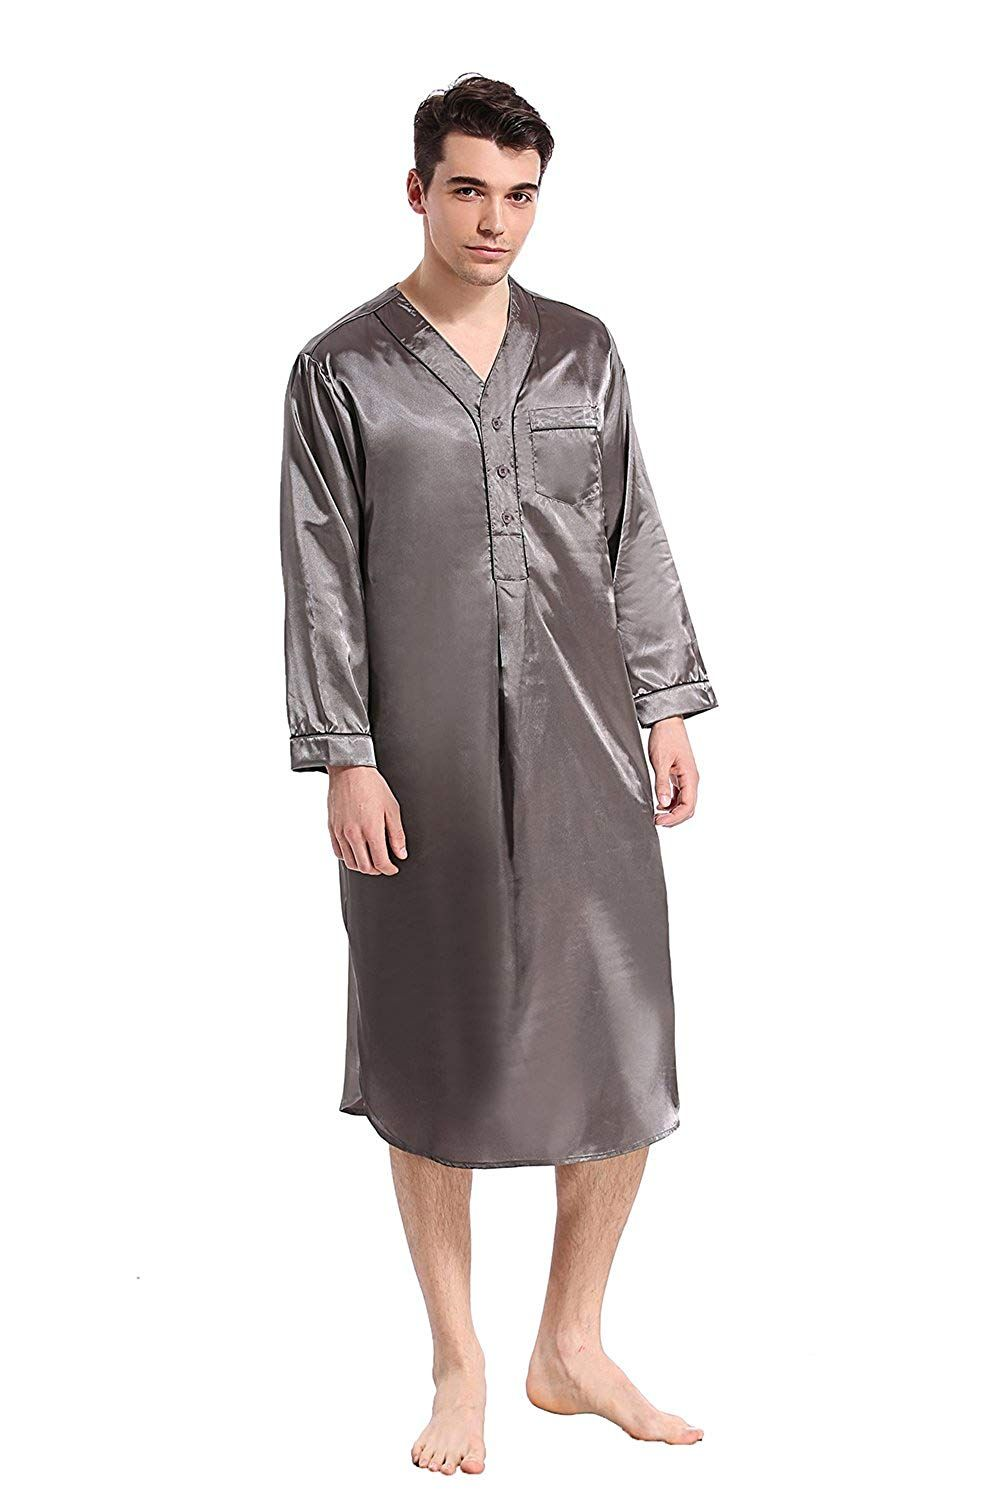 Like2sea Silky Satin Nightshirt for Men fc9102942